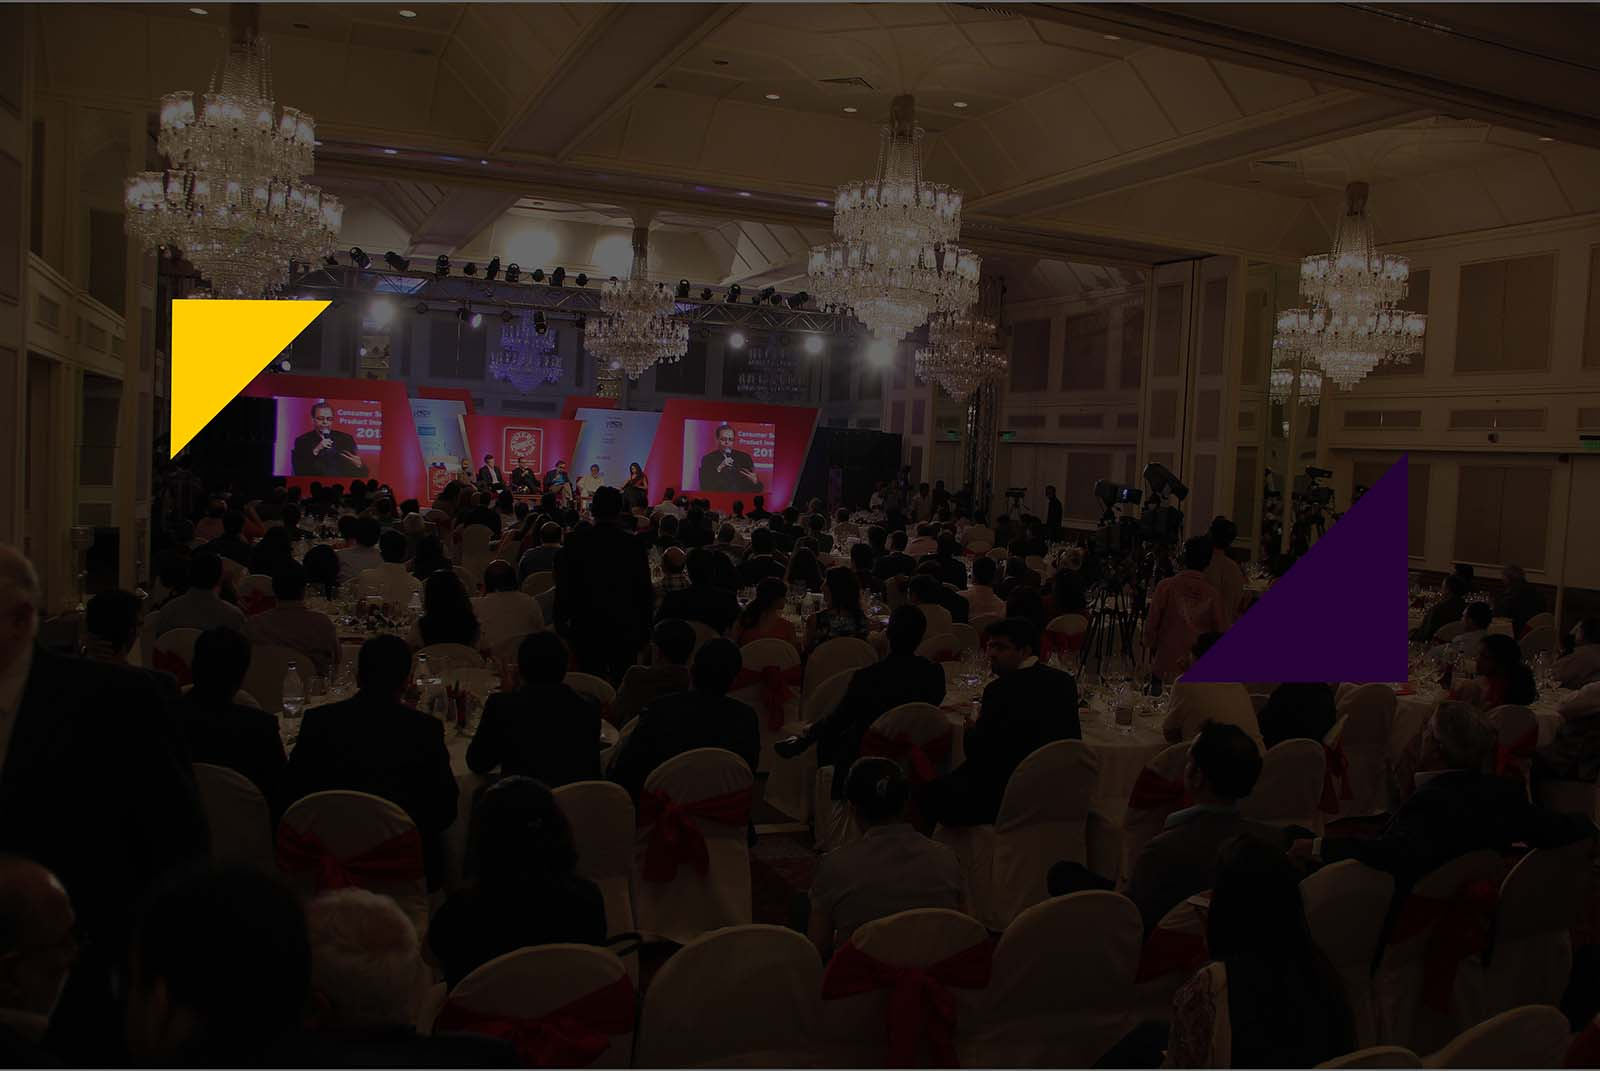 Homepage header image 4 of Corporate Events planning company Pegasus Events Pvt Ltd website